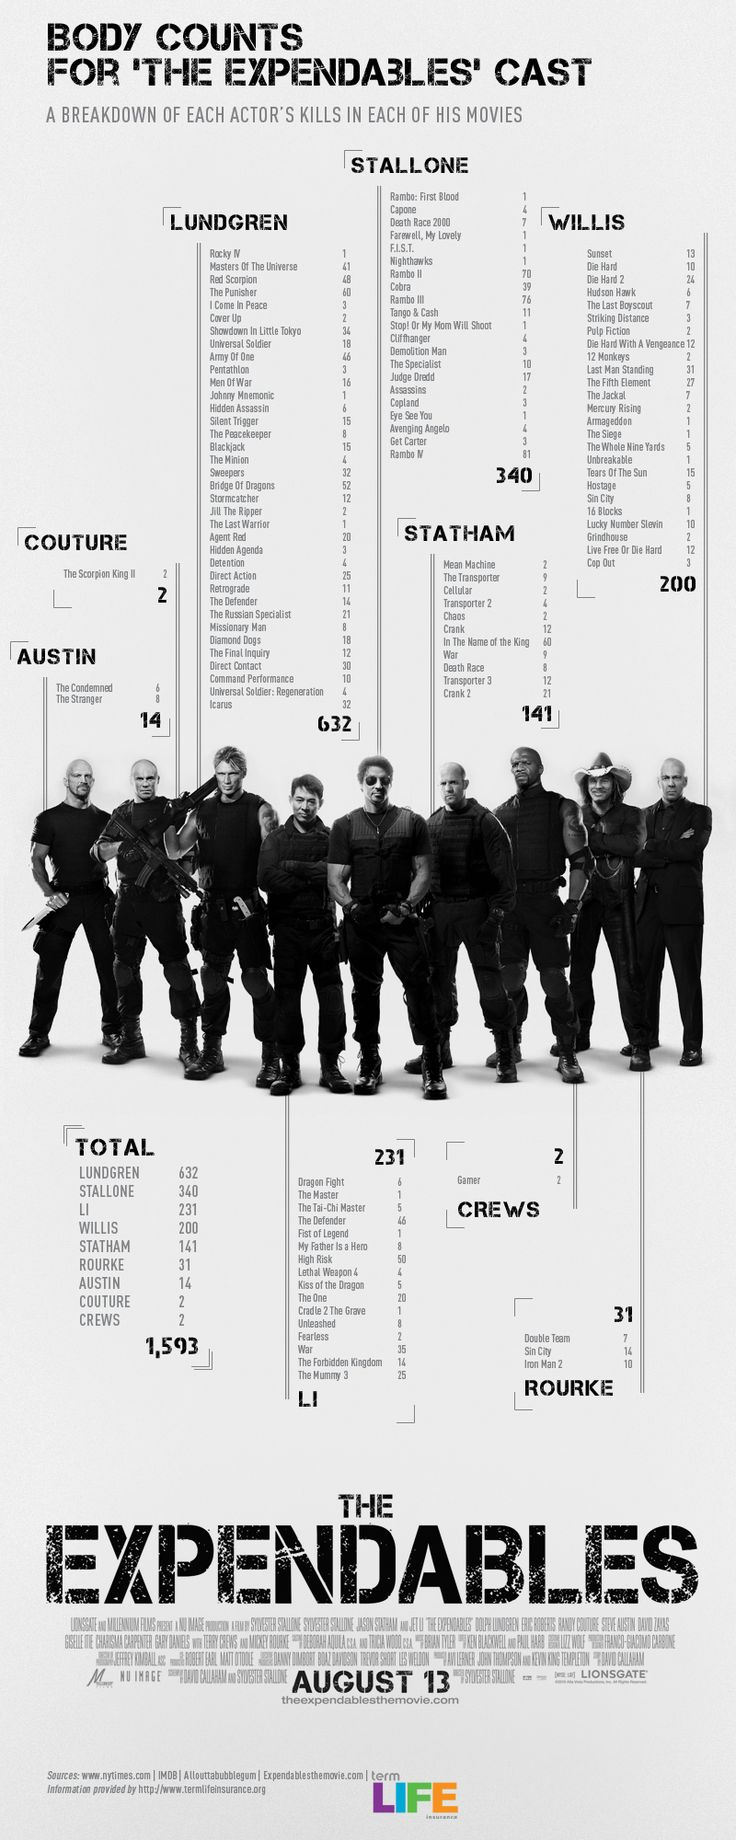 The Expendables Kill Counts